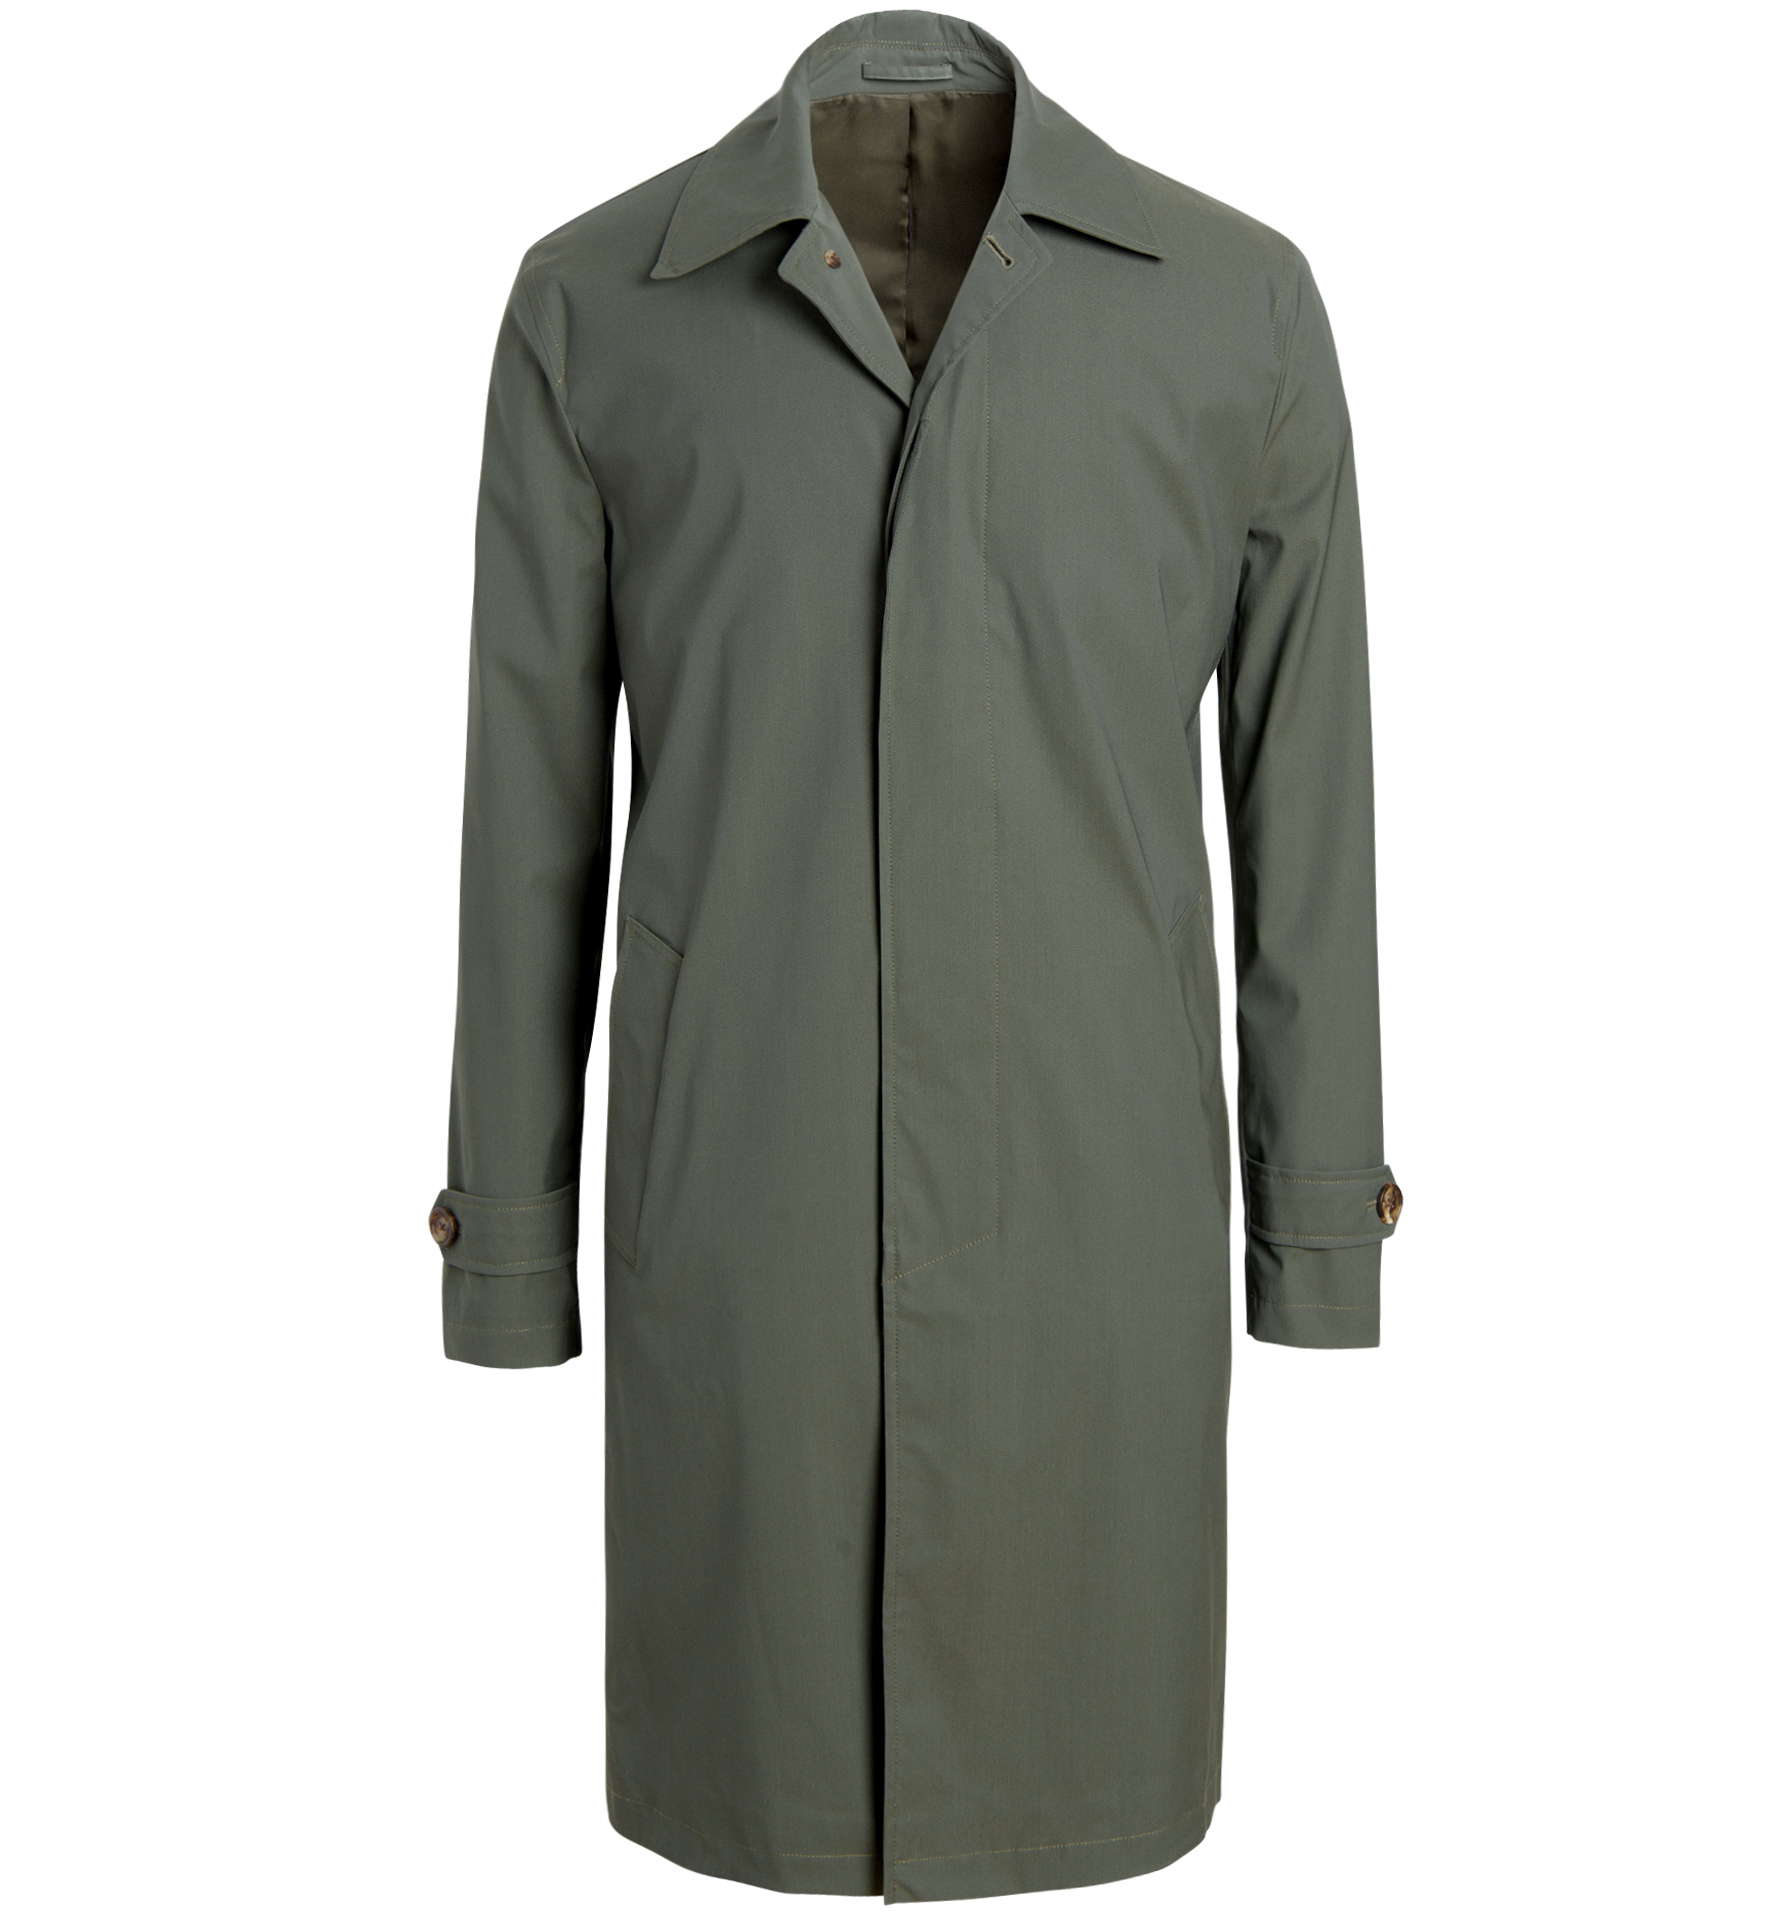 Zoom Image of Bond Fatigue Green Storm System Raincoat